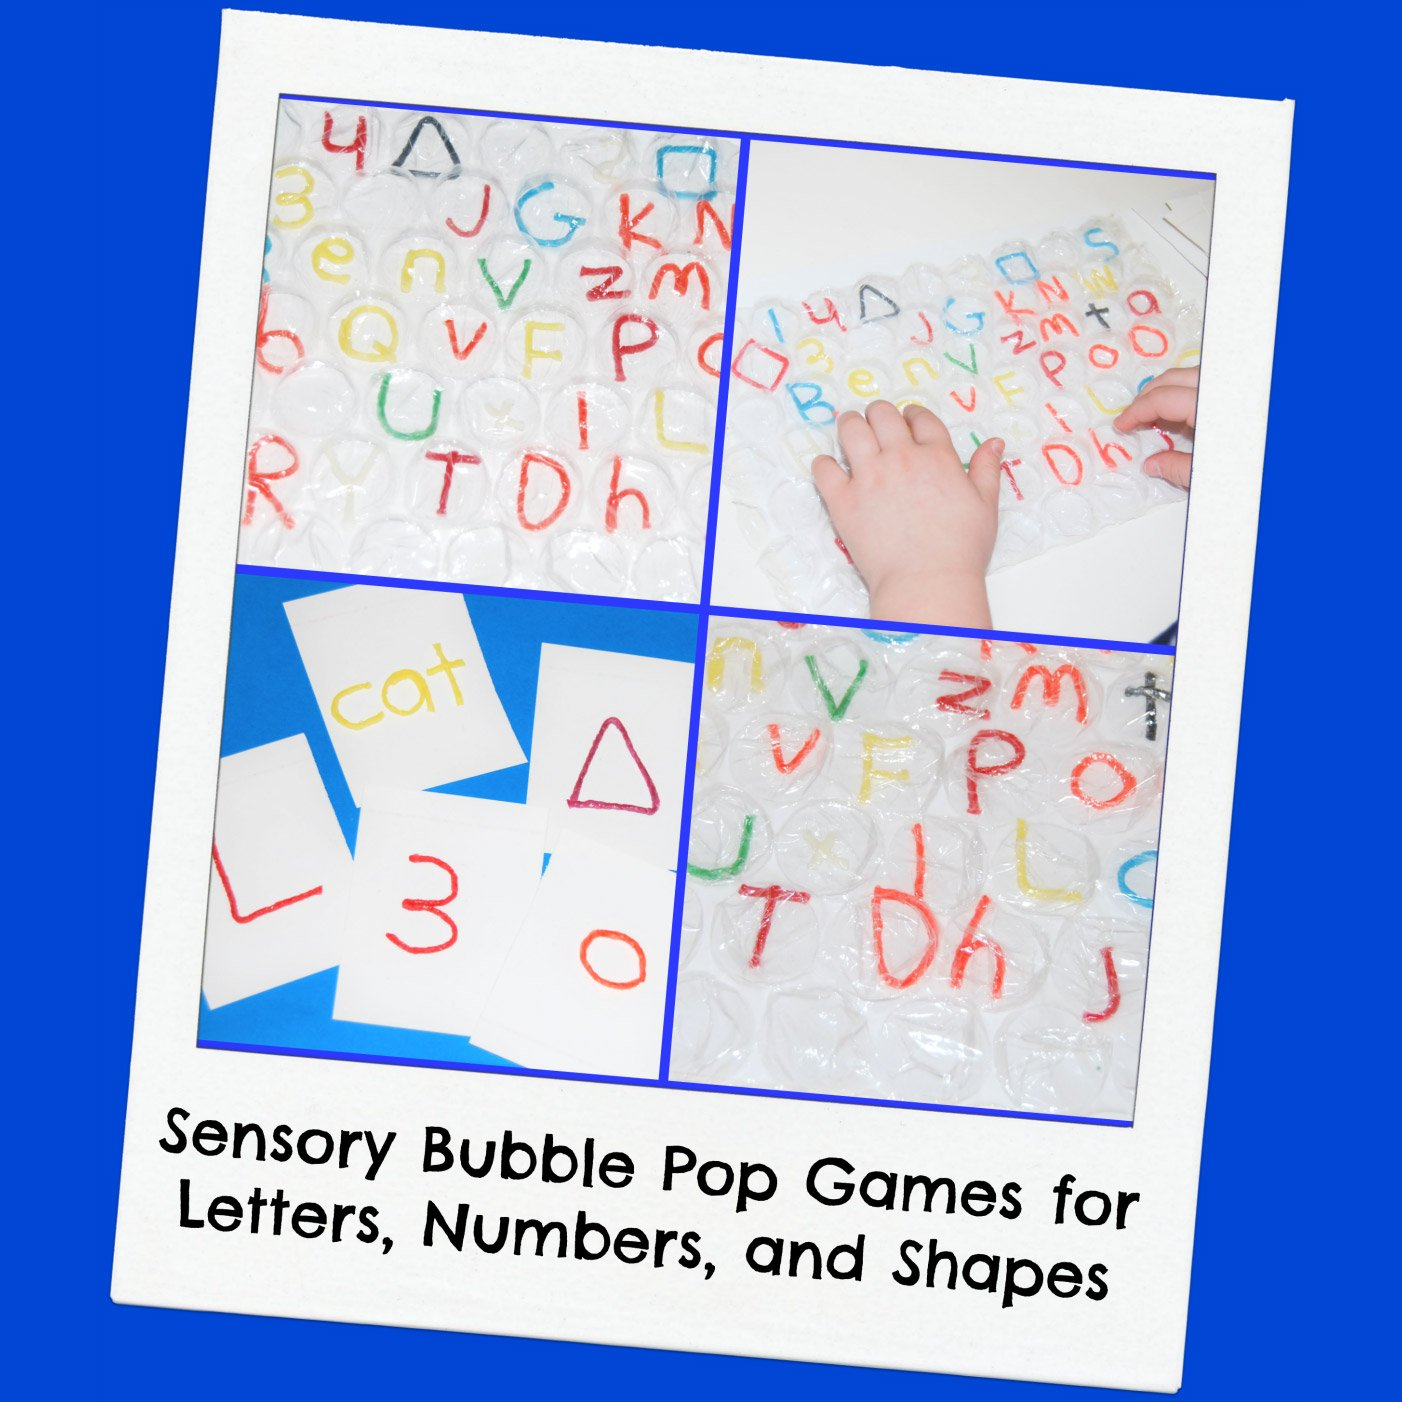 Sensory Bubble Pop Games for Letters, Numbers, and Shapes